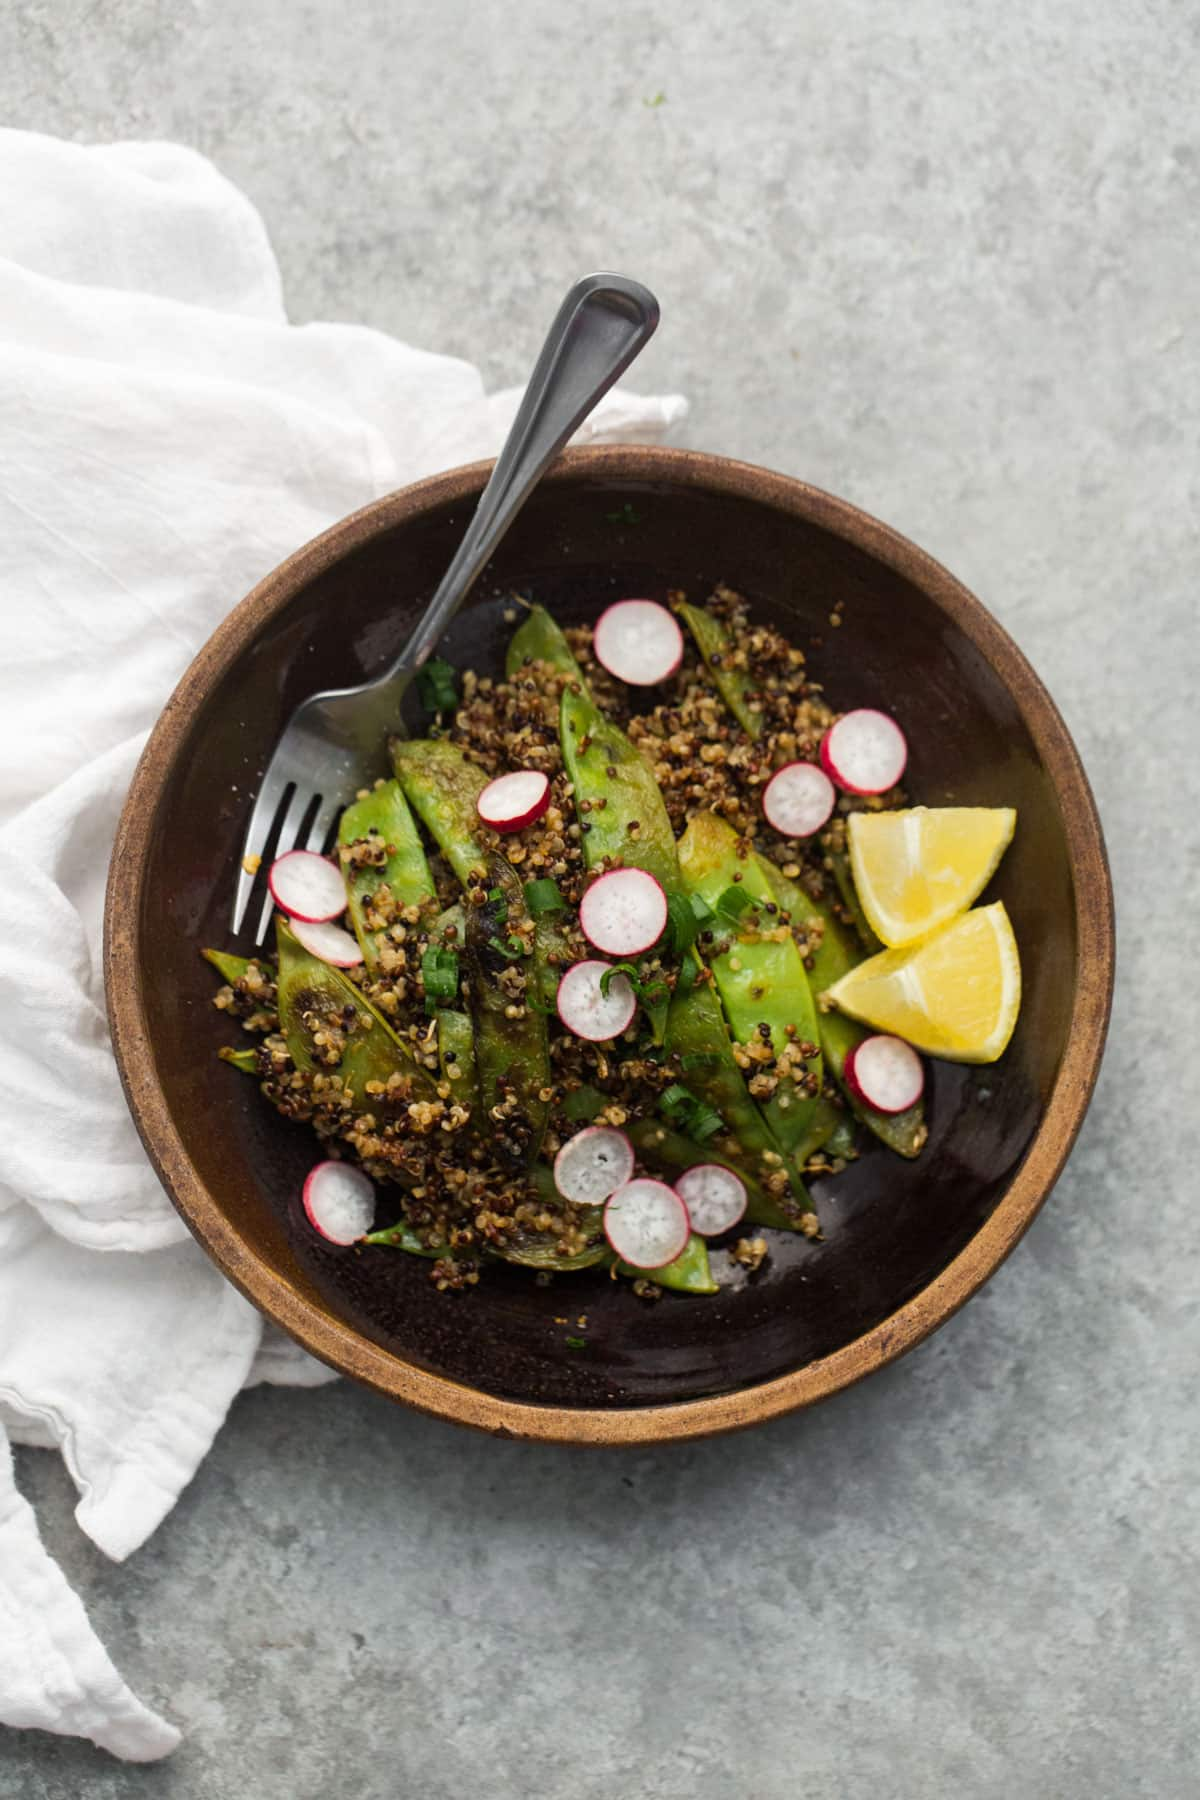 Spicy Snow Peas with Quinoa and Radishes